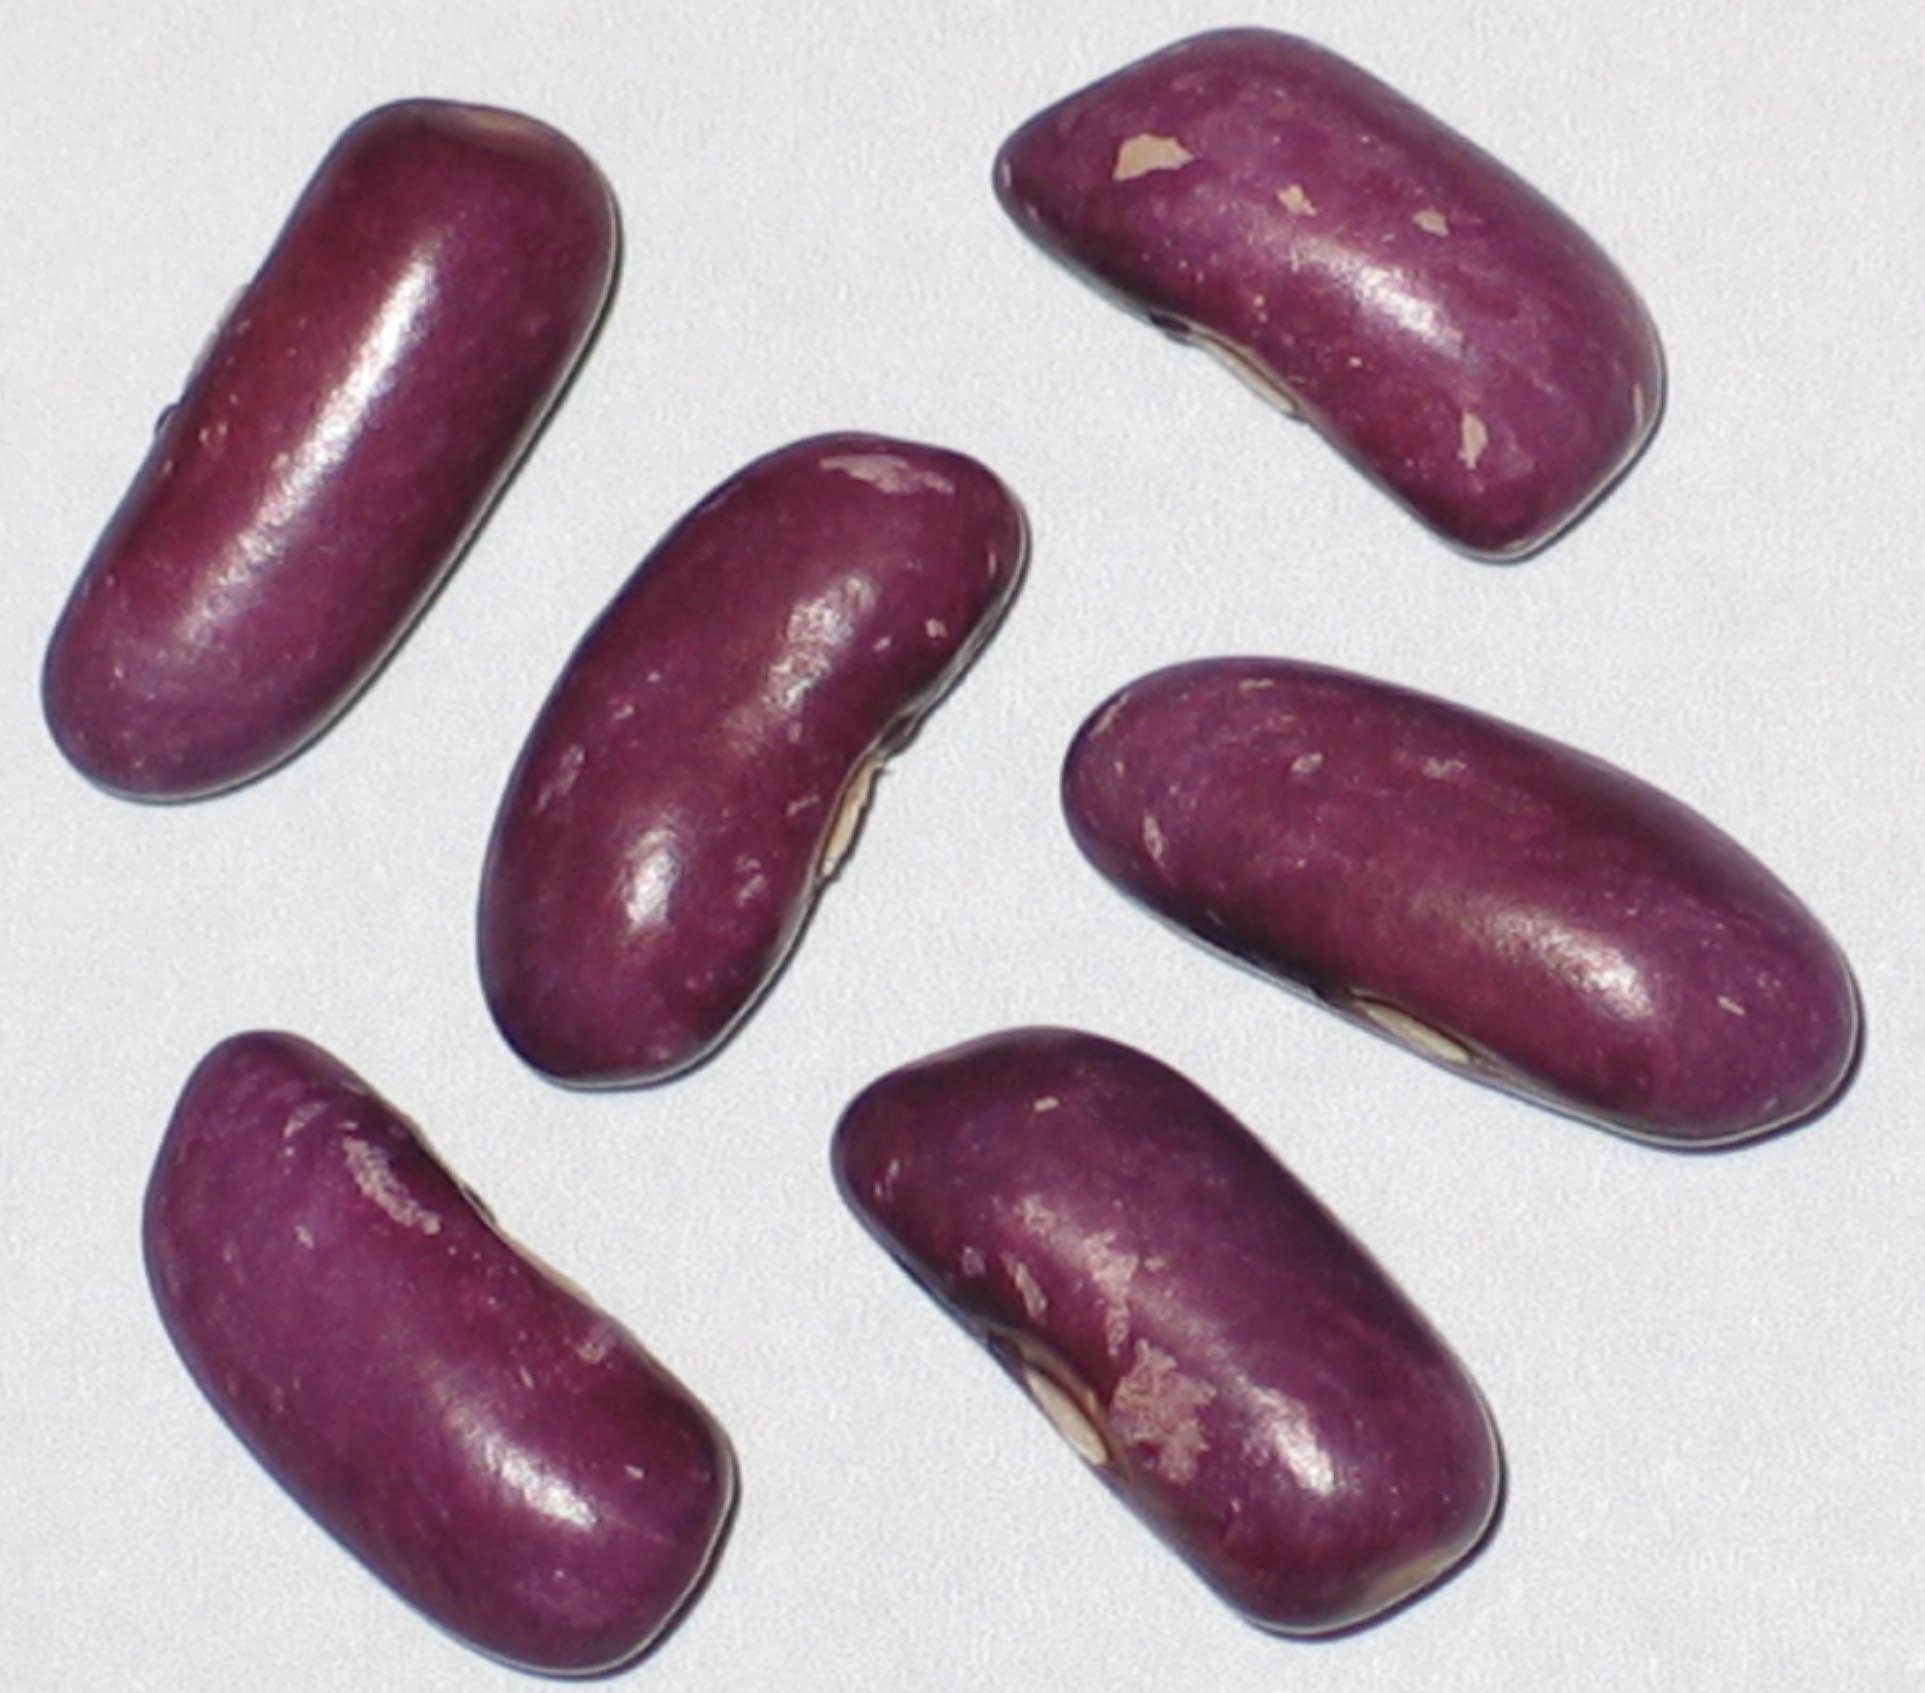 image of Koronis Purple beans